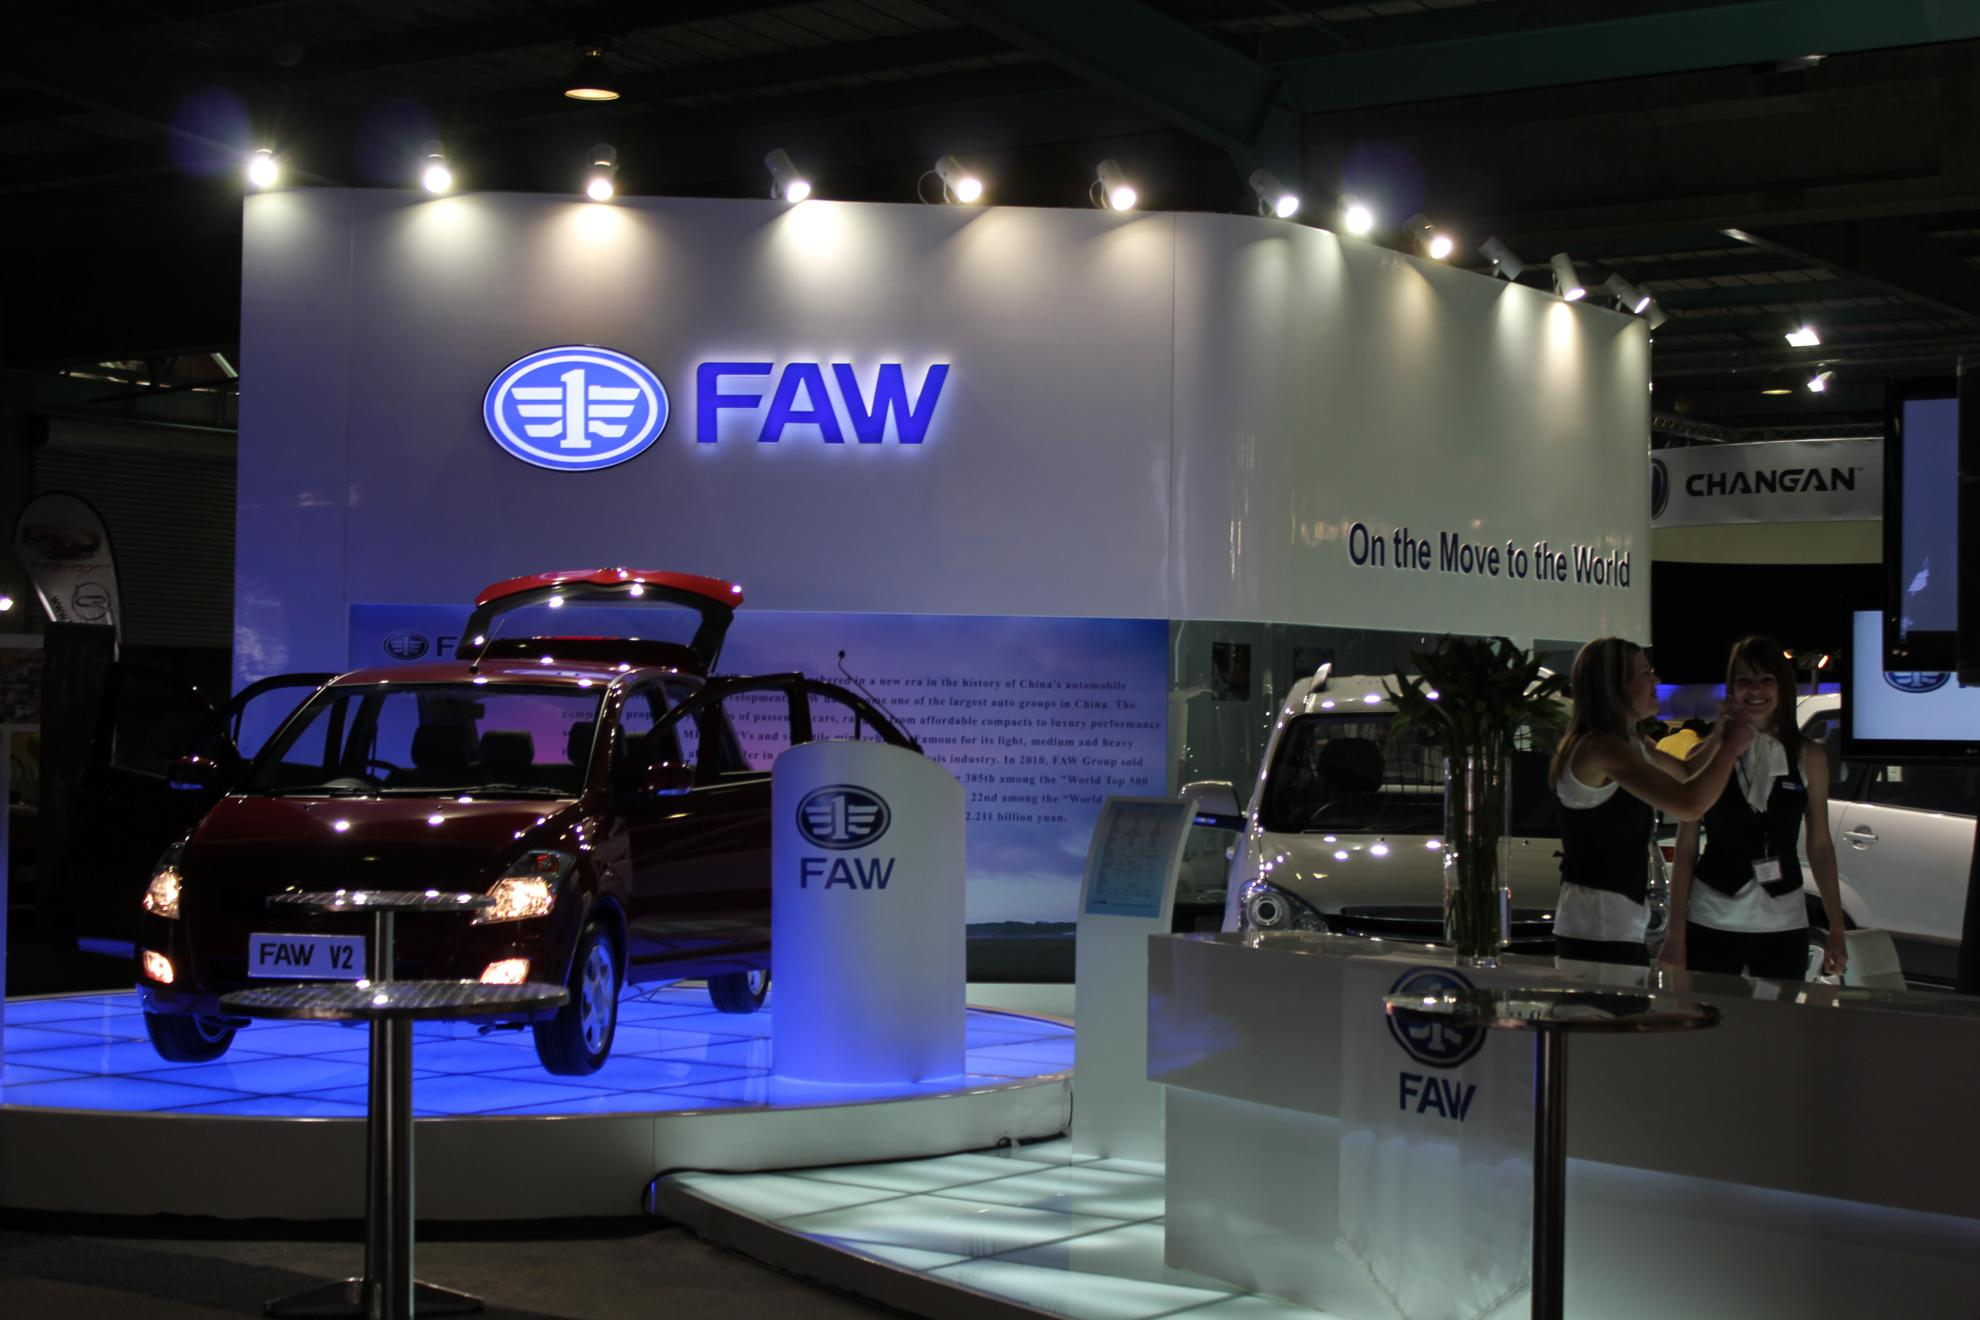 FAW at the Johannesburg Motor Show